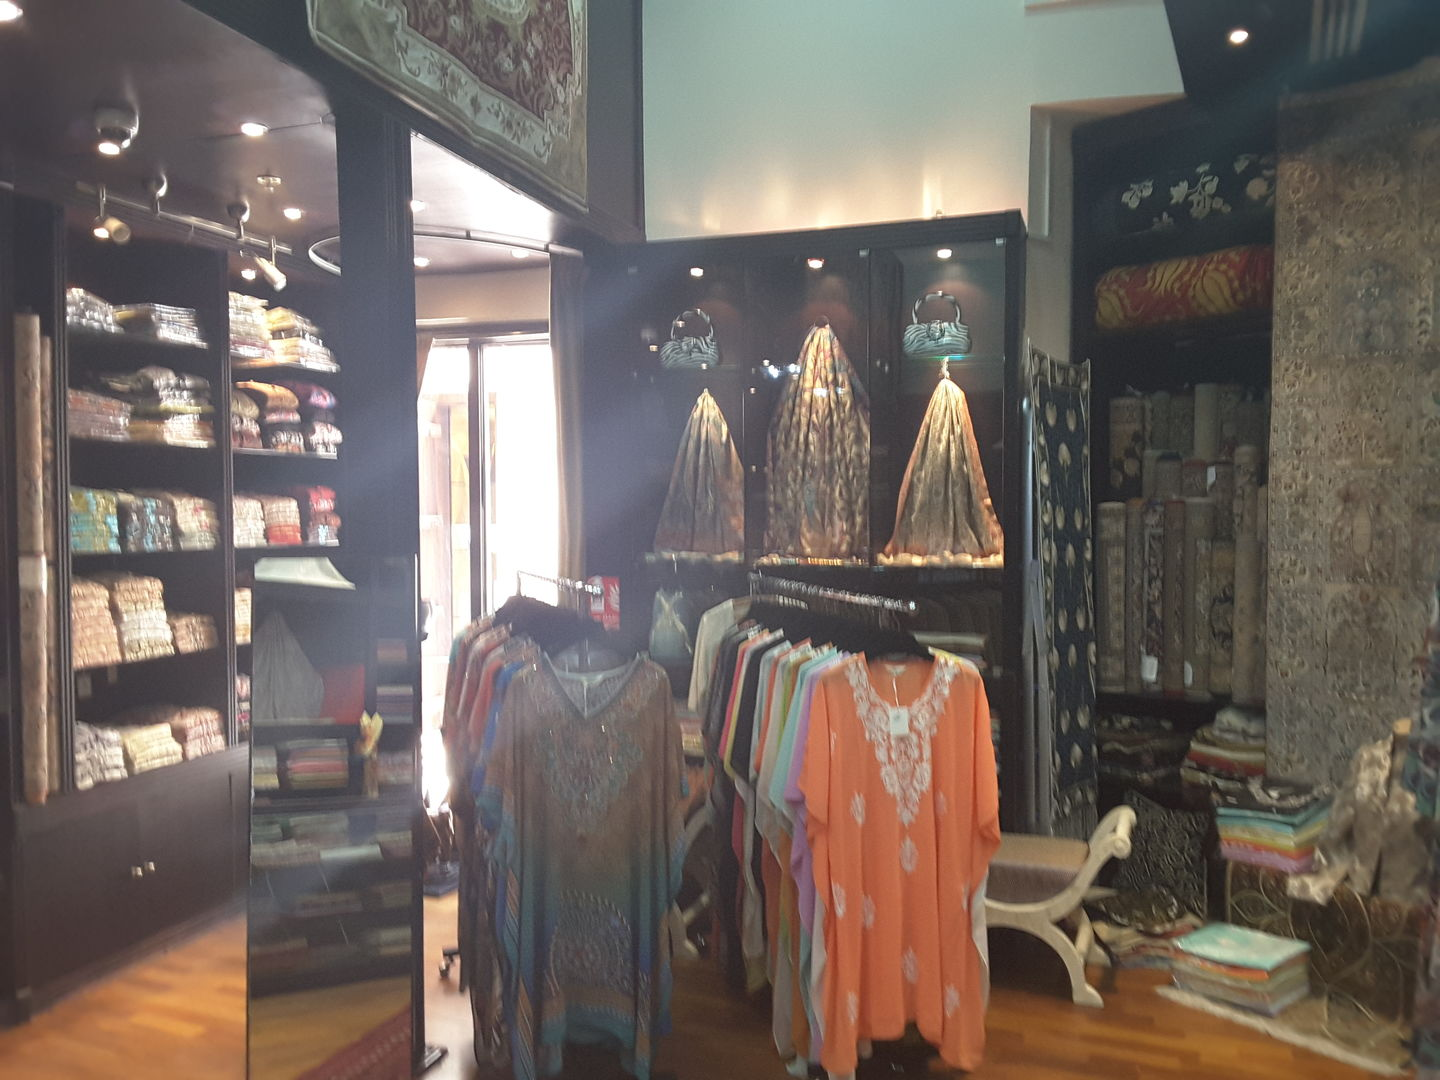 HiDubai-business-toshkhana-trading-shopping-fashion-accessories-jumeirah-3-dubai-2